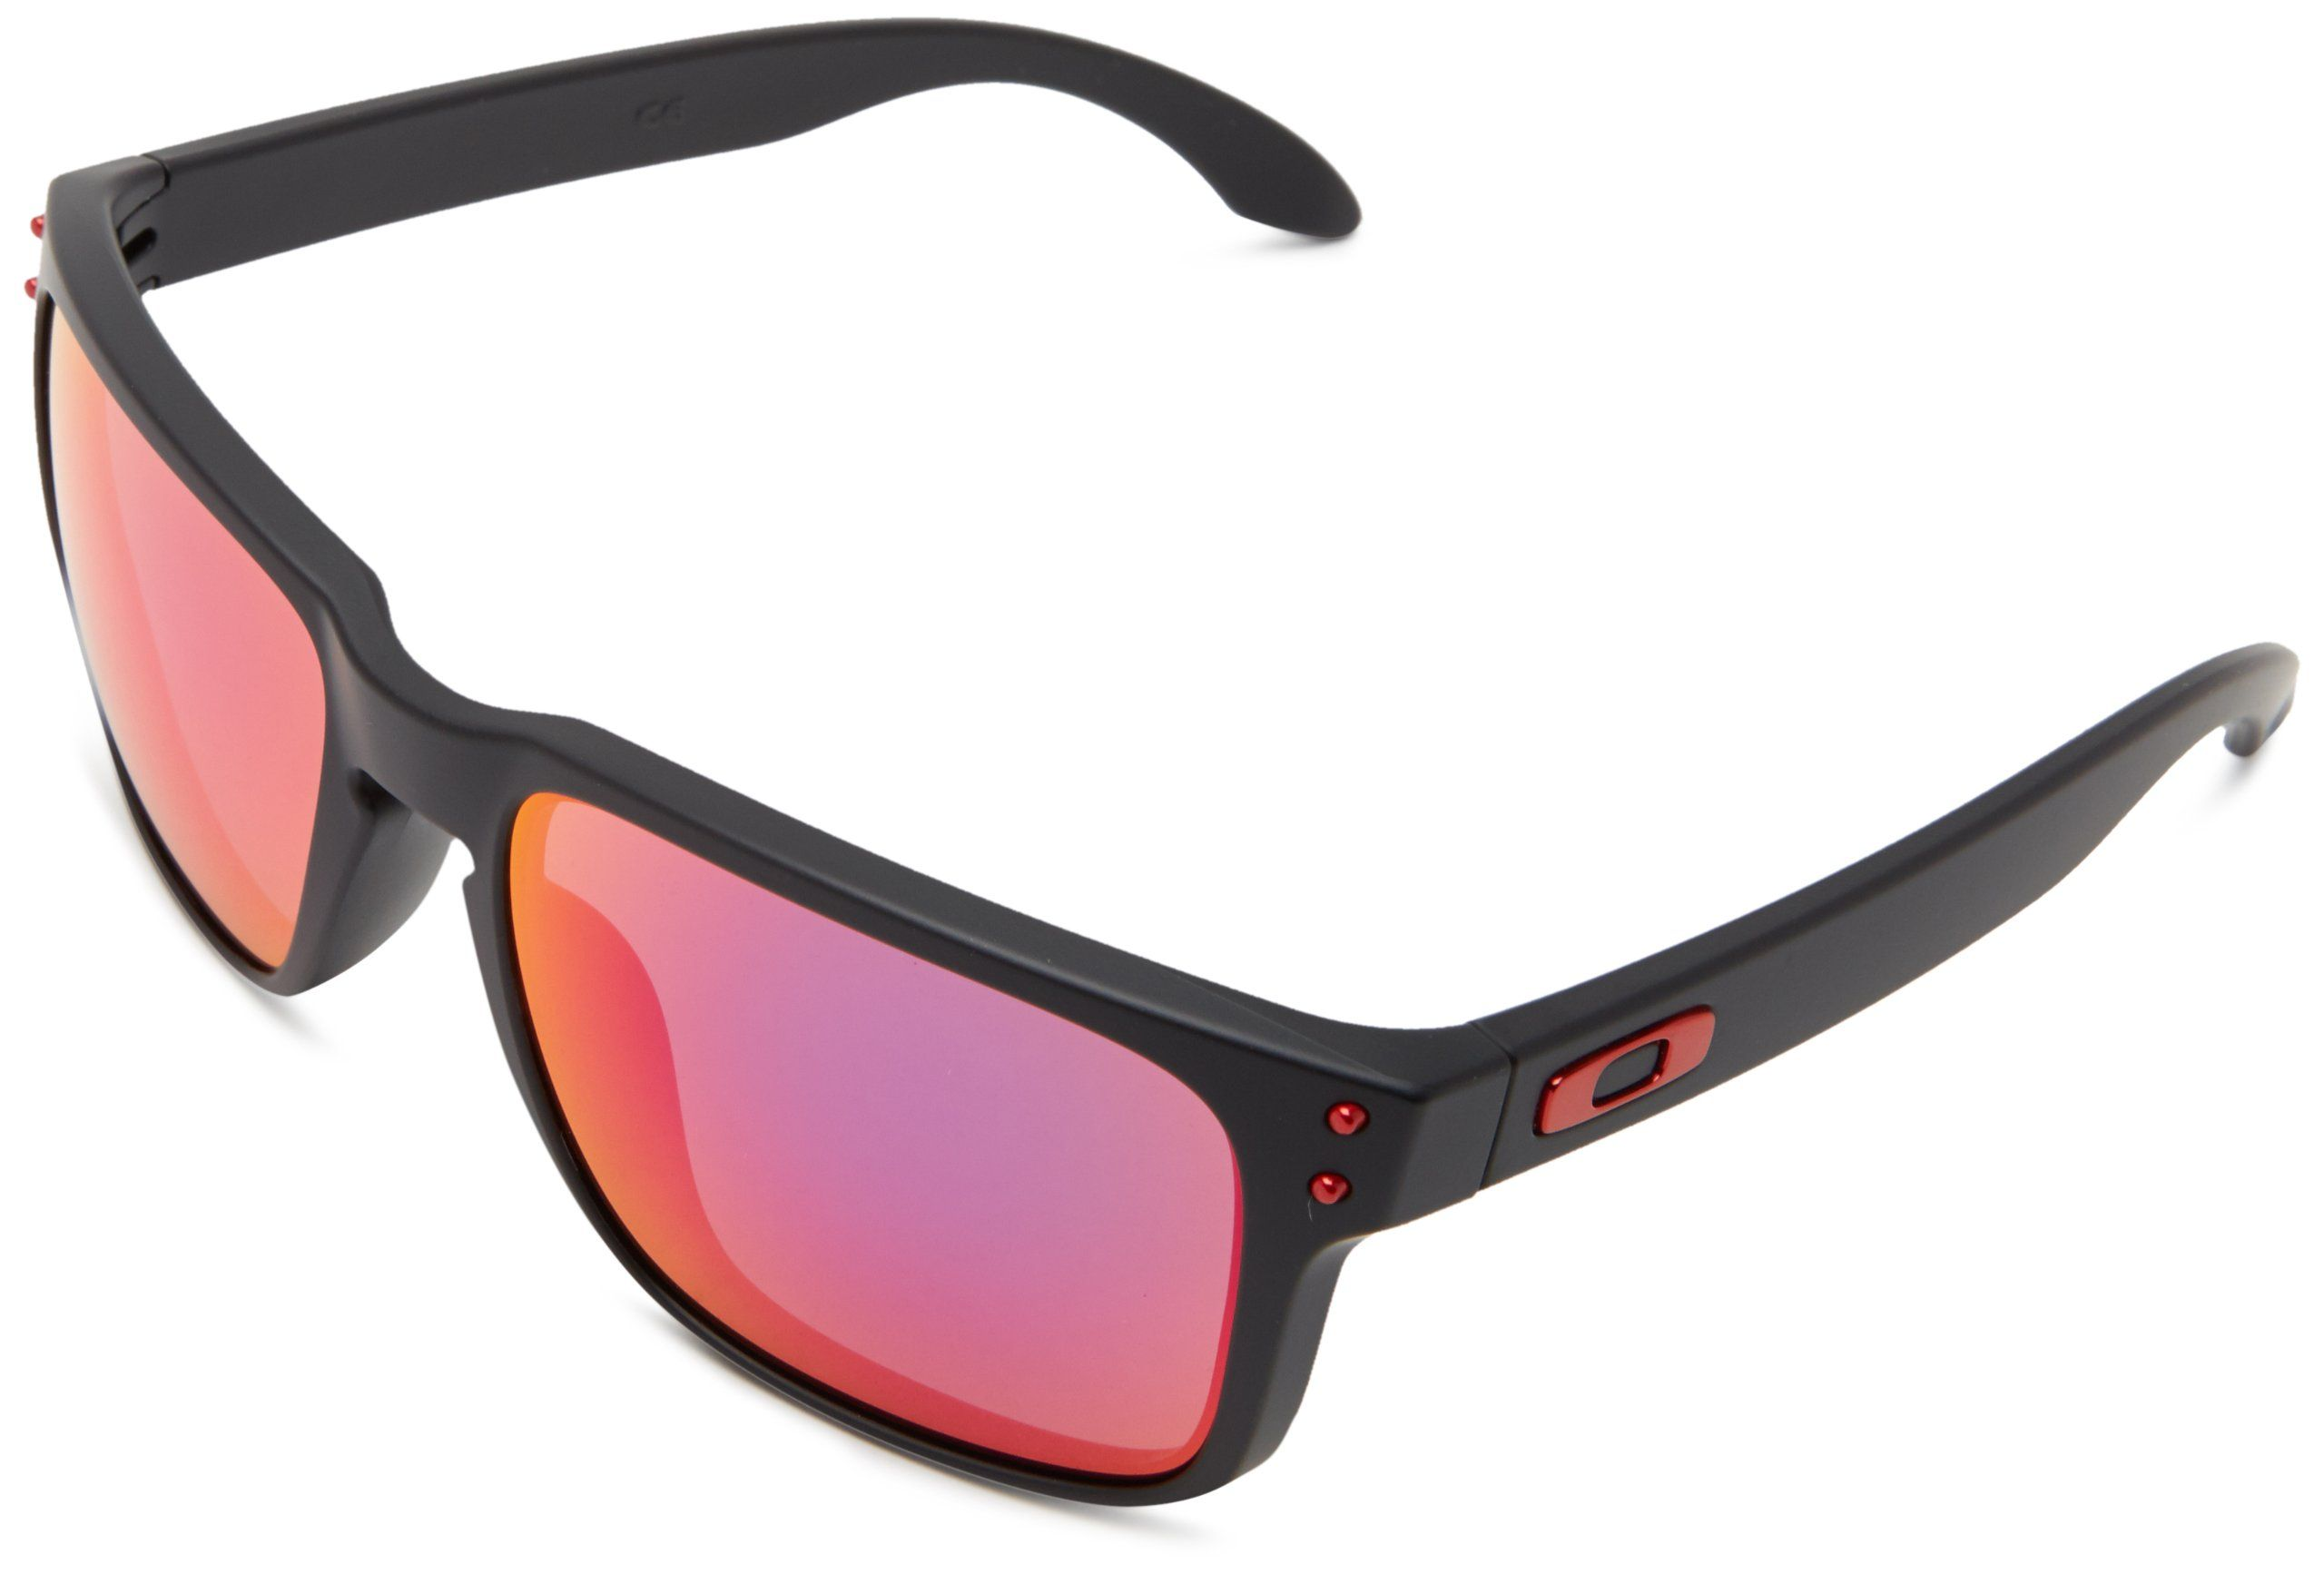 3dfb838594 Keep for possible PRESCRIPTION ordering. Recommended for aviation. Oakley  Holbrook OO9102-36 Iridium Sport Sunglasses